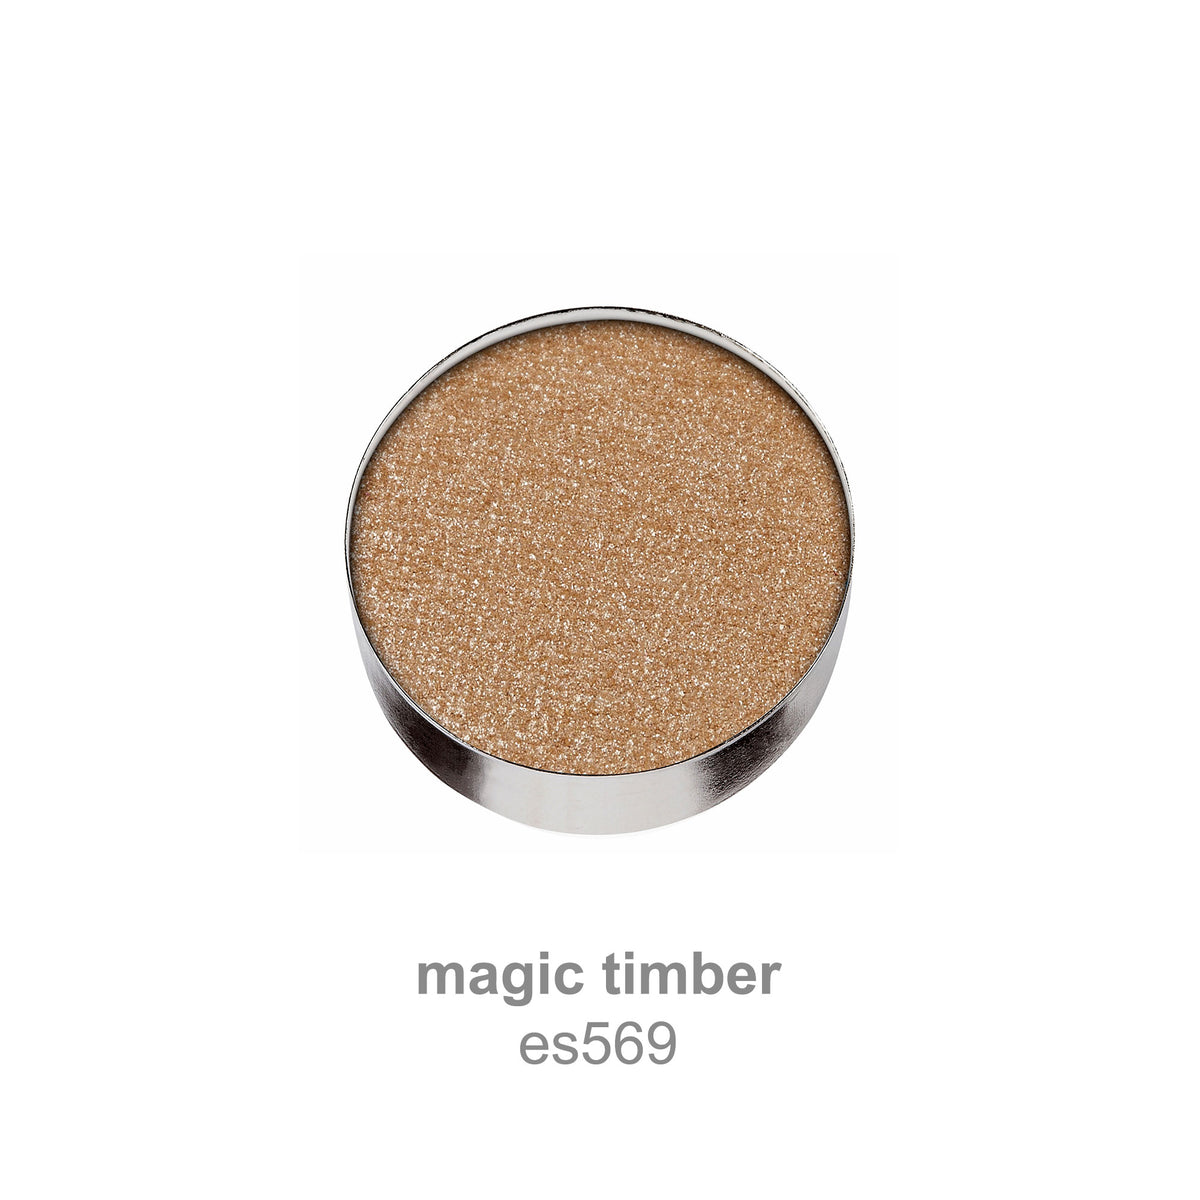 magic timber (es569)